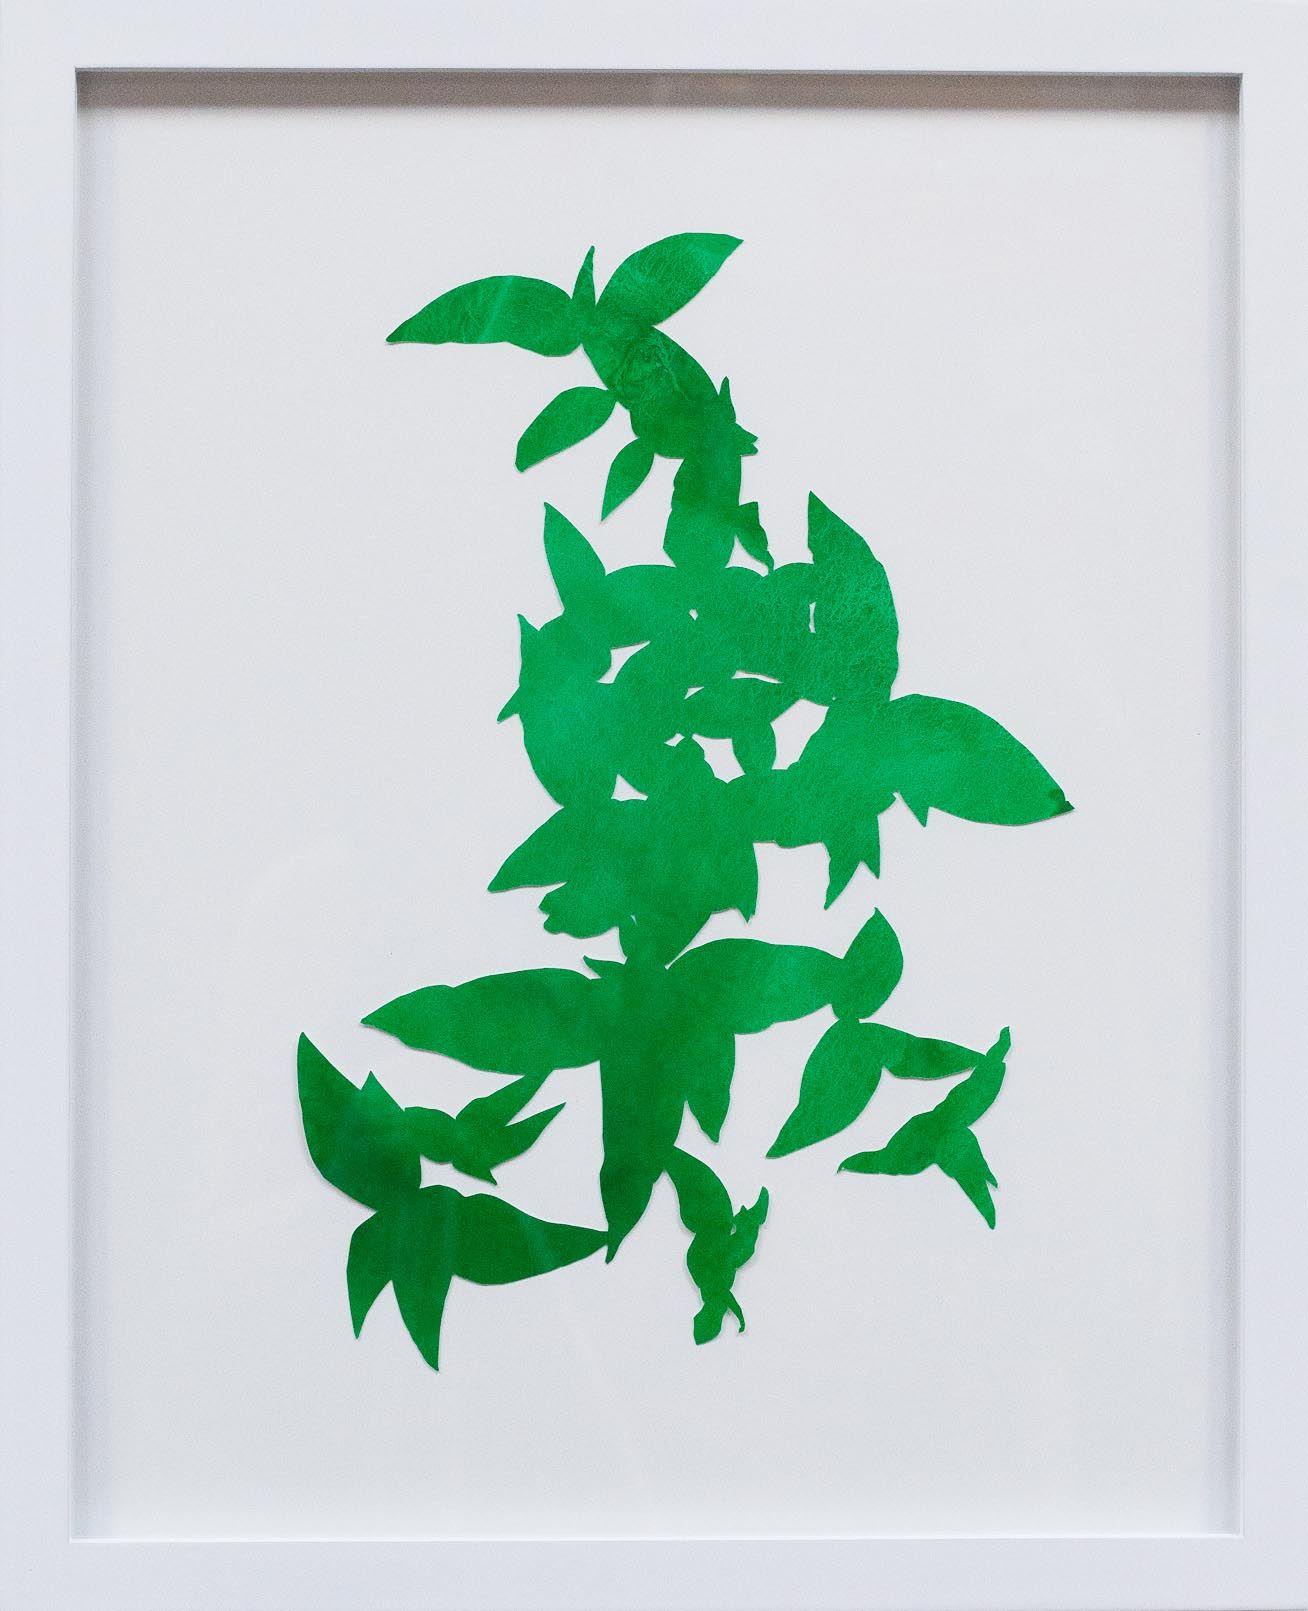 Hannah Cole  Large Cluster of Green Weeds, 2018  watercolor on cut paper  Framed: 20h x 16w in 50.80h x 40.64w cm  HC_045